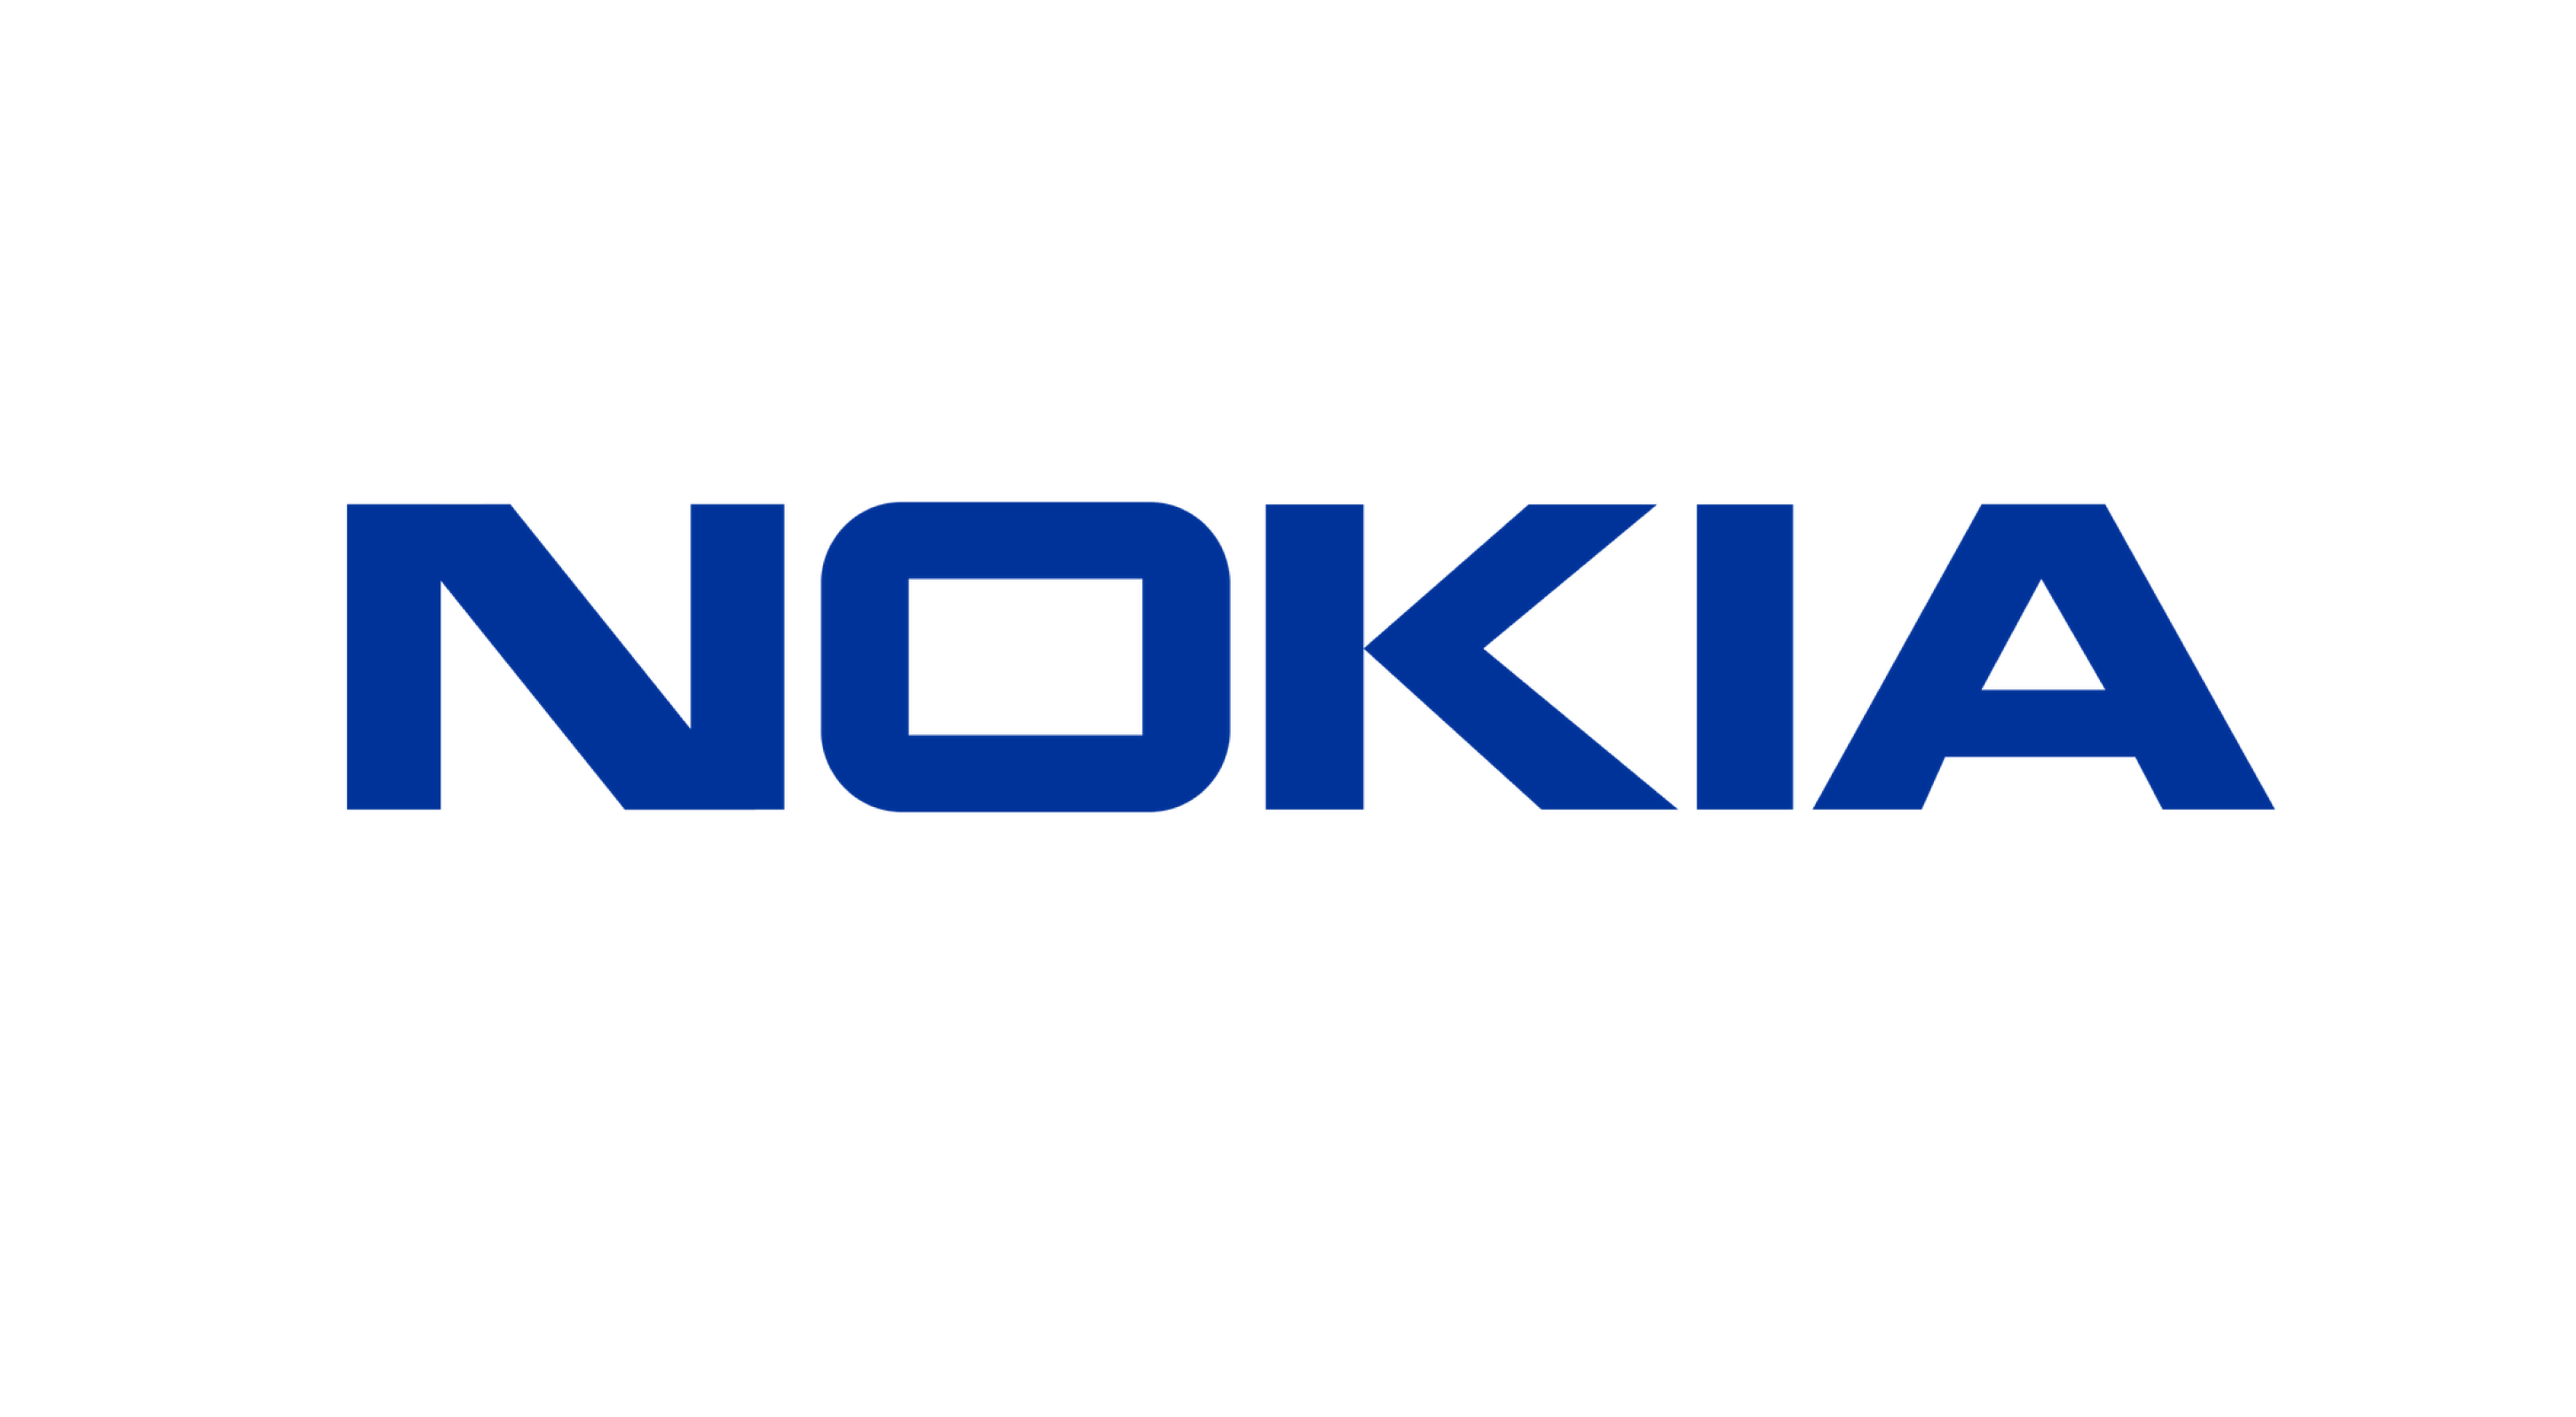 Mobile To Roll Out Nationwide 5G Network Using Nokia Solutions